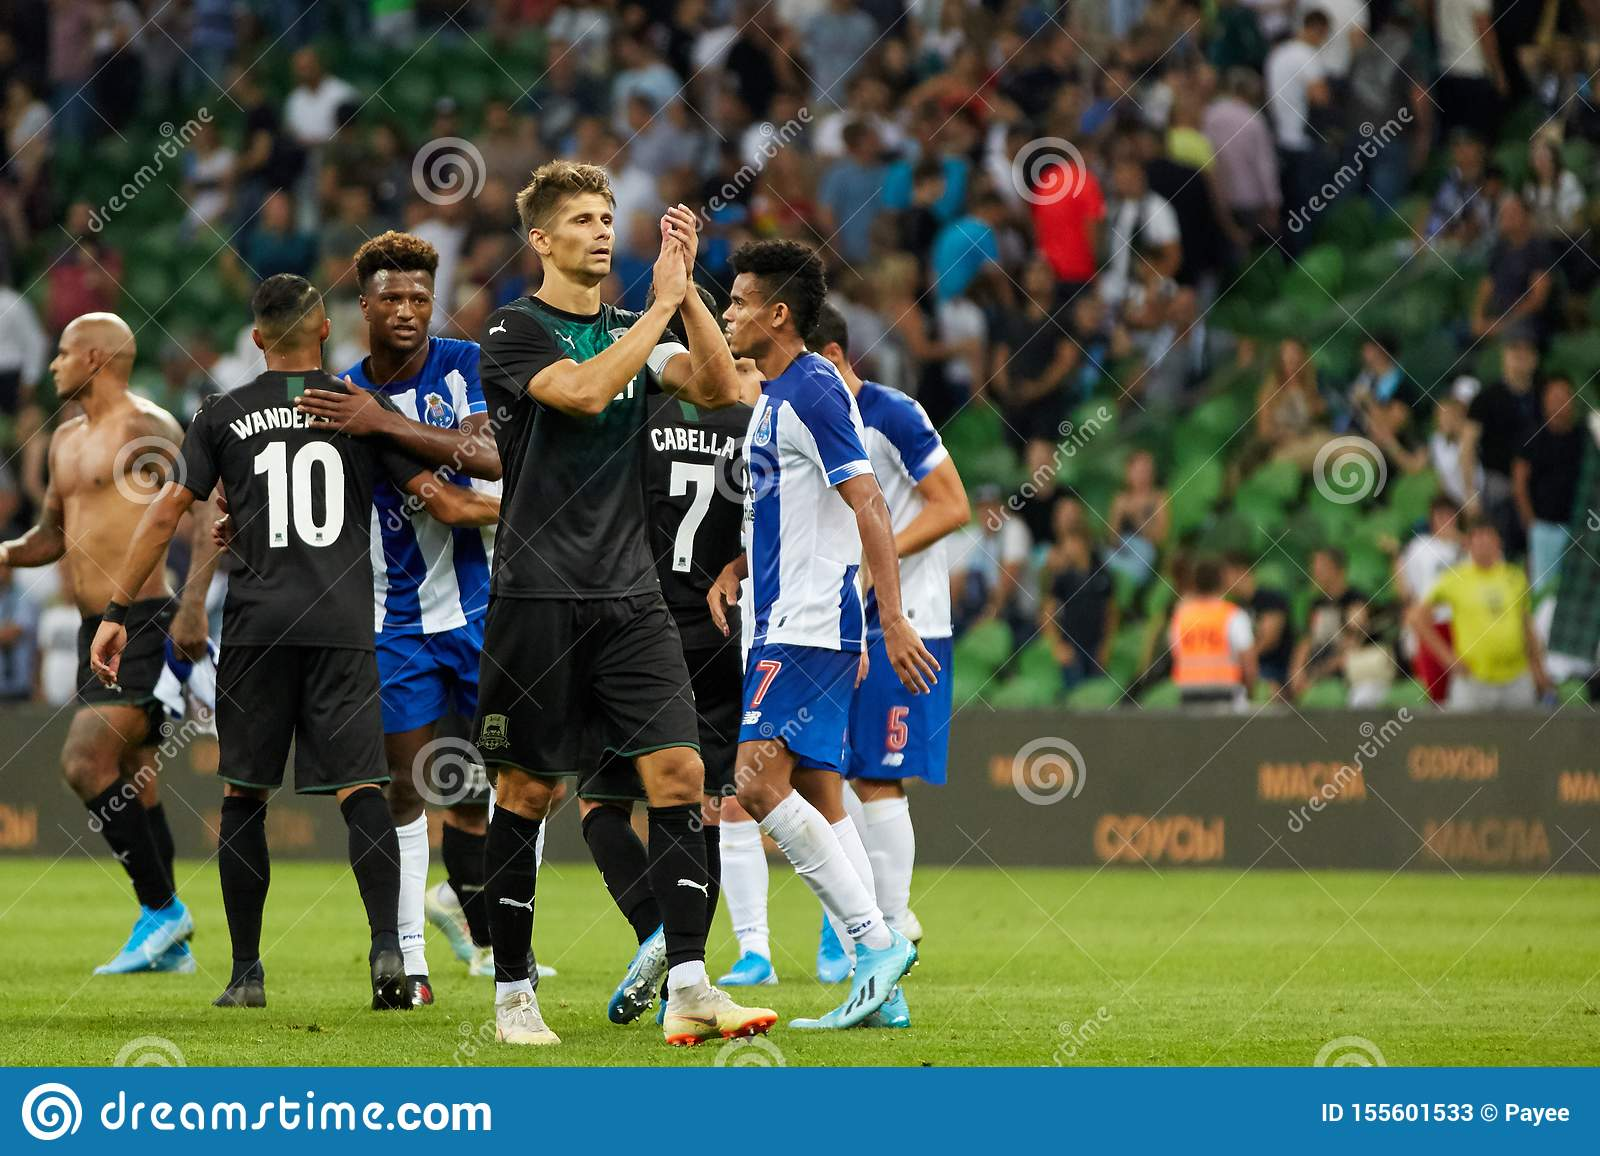 Players Of Fc Krasnodar Thank The Fans Editorial Stock Photo Image Of Player League 155601533